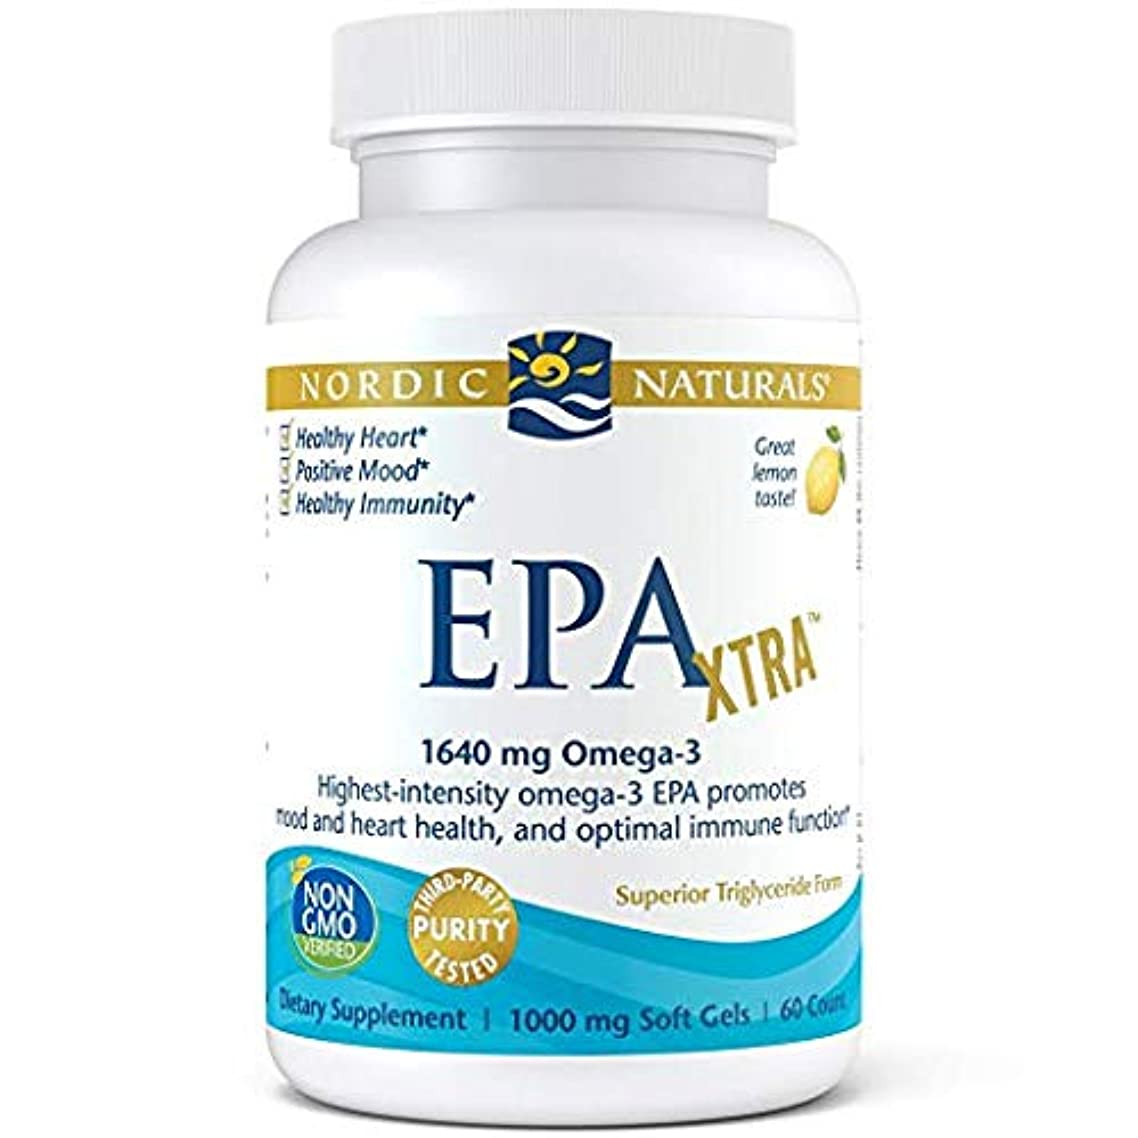 Nordic Naturals - EPA Xtra, Promotes Mood and Heart Health, and Optimal Immune Function, 60 Soft Gels